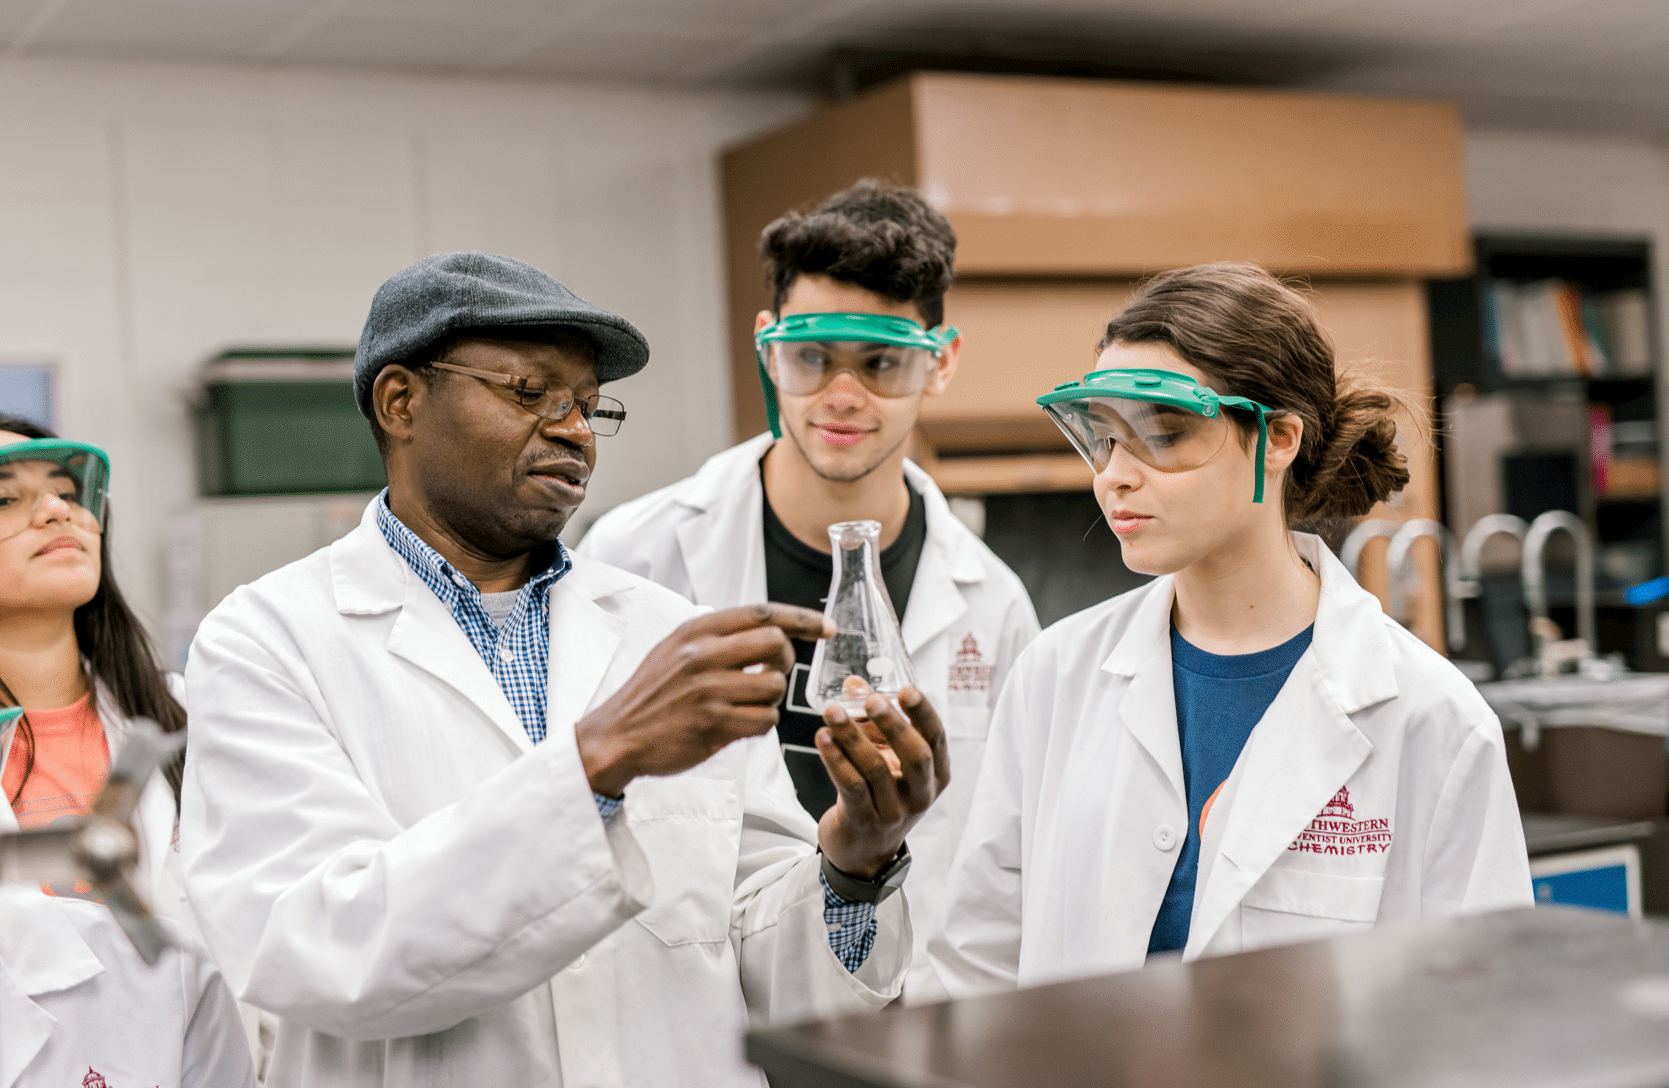 Two students wearing white lab coats and goggles listen to their professor who is holding and pointing to a flask